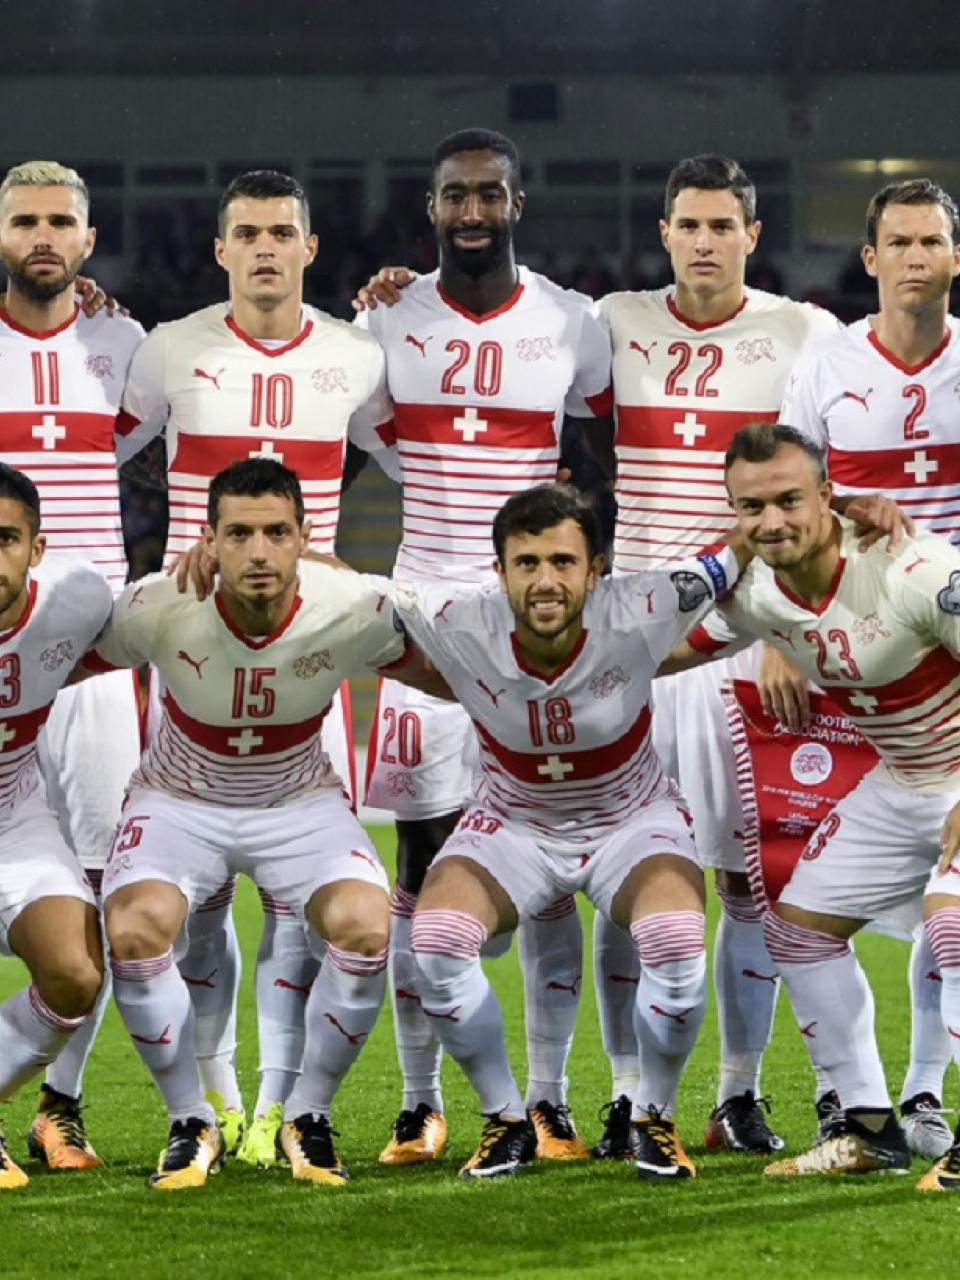 Switzerland national football team 2015 ©Steindy